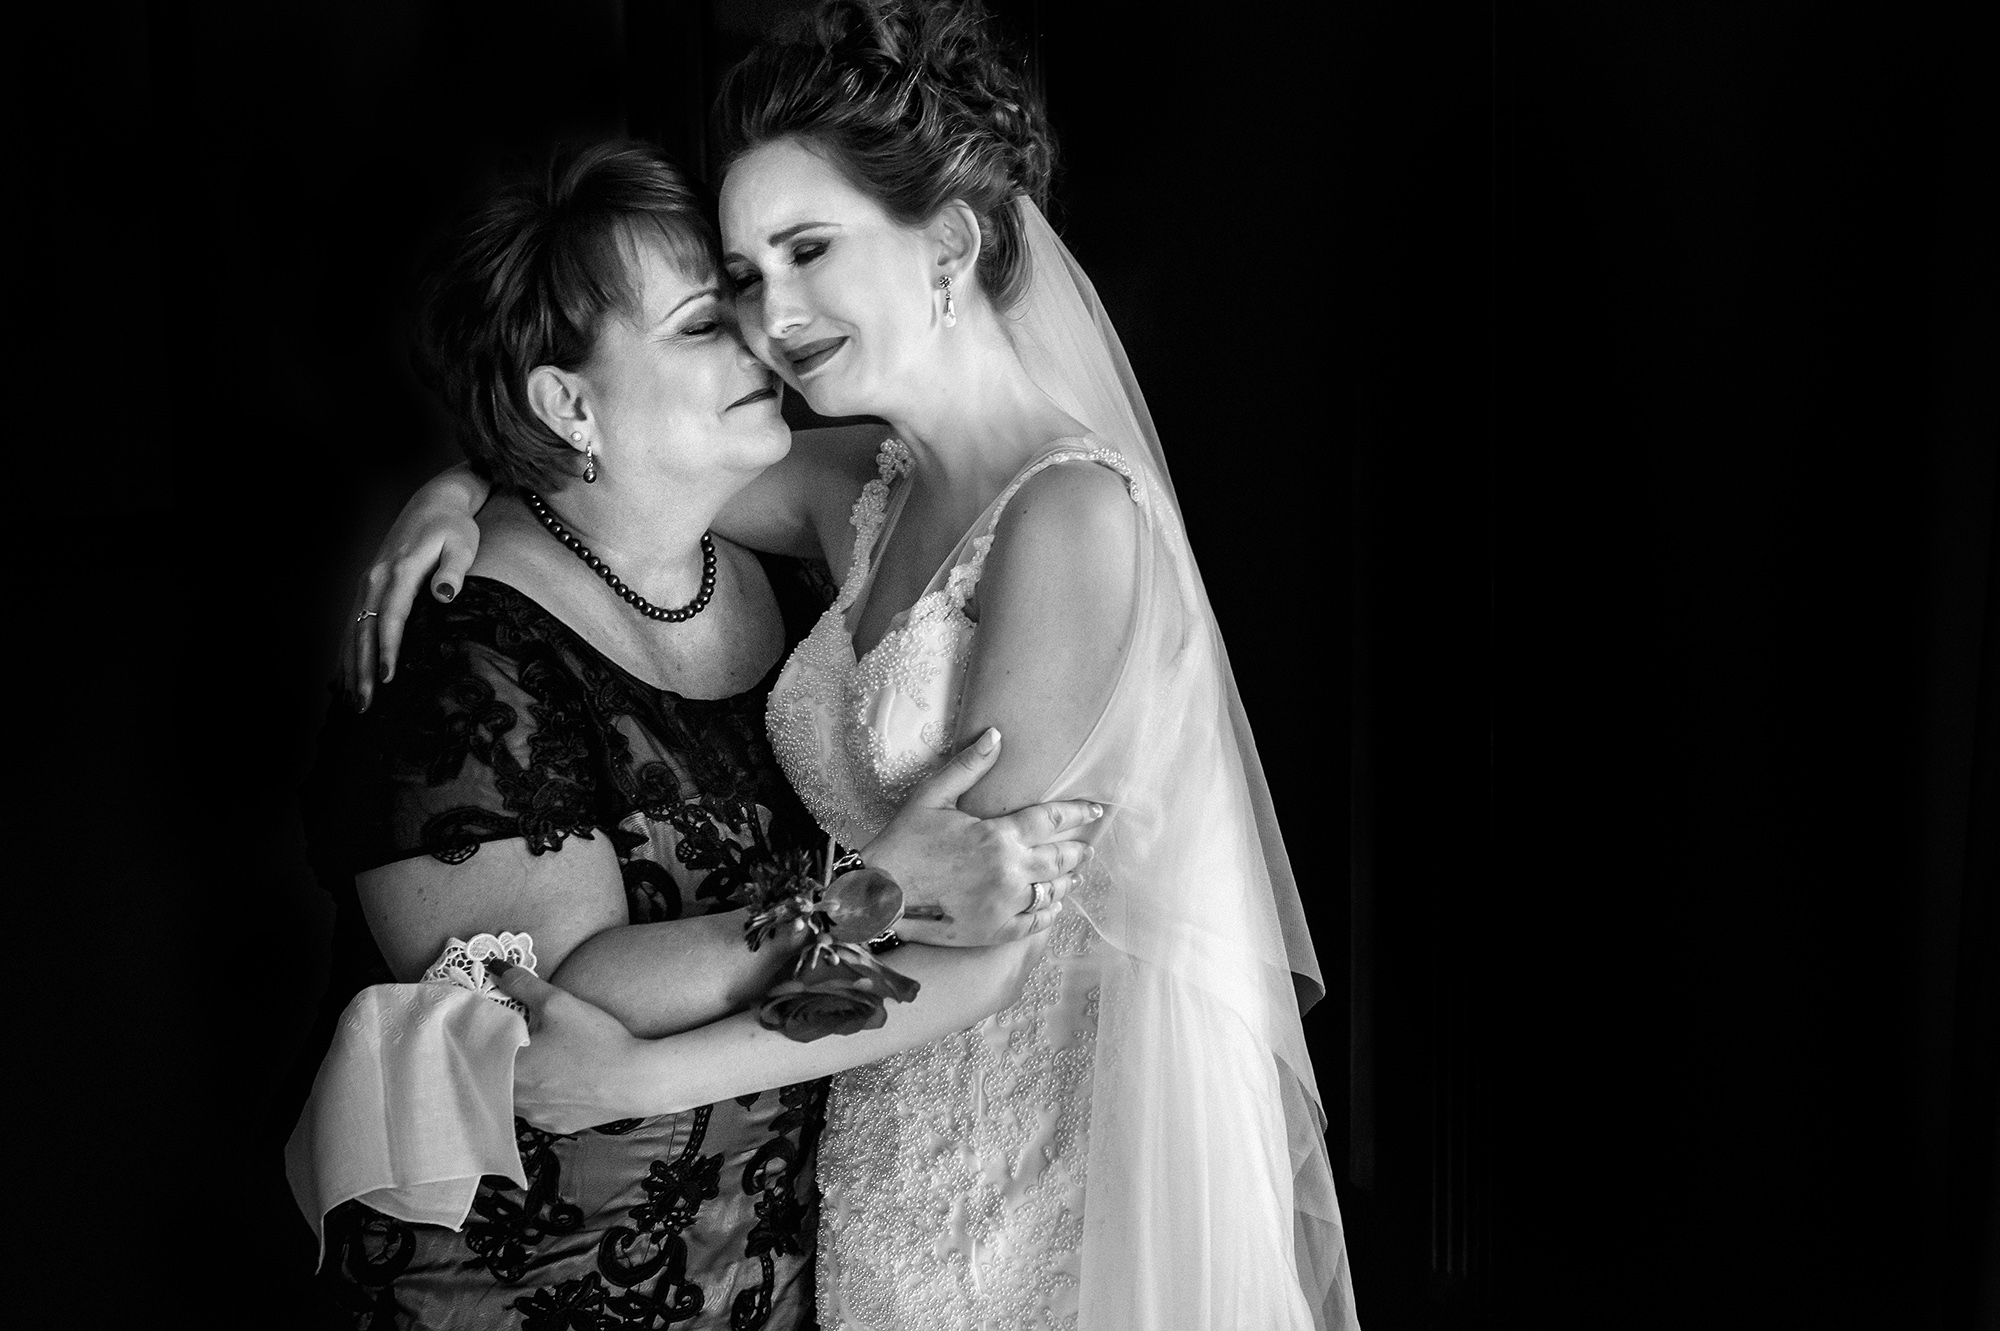 Mom and bride in tears embrace each other - photo by Davina plus Daniel